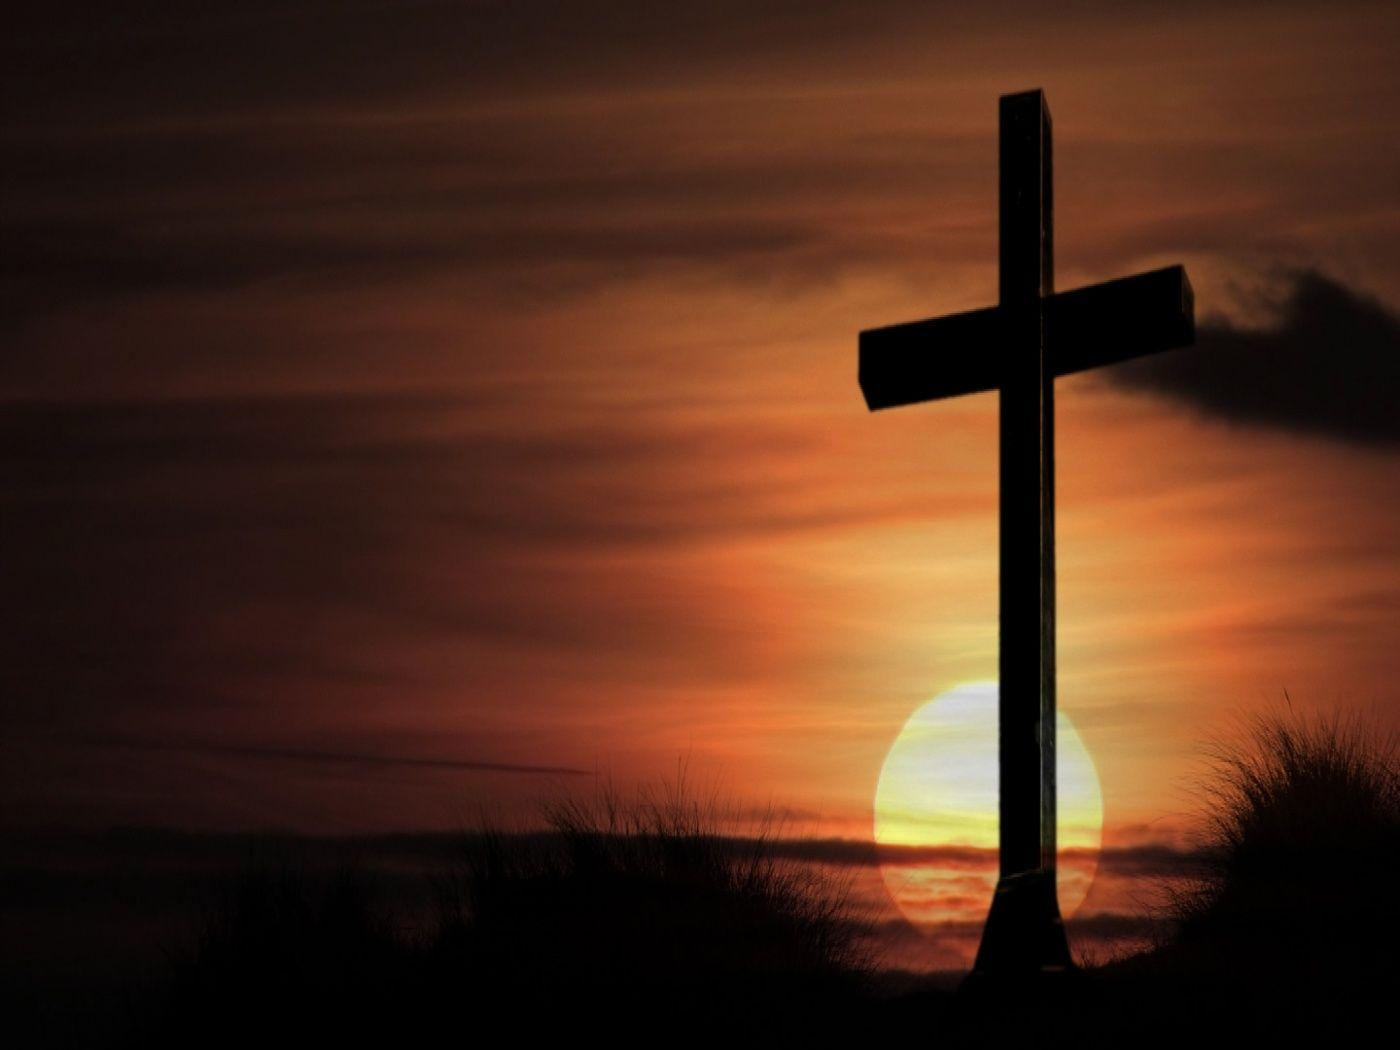 Wallpapers For > Christian Cross Wallpapers For Iphone